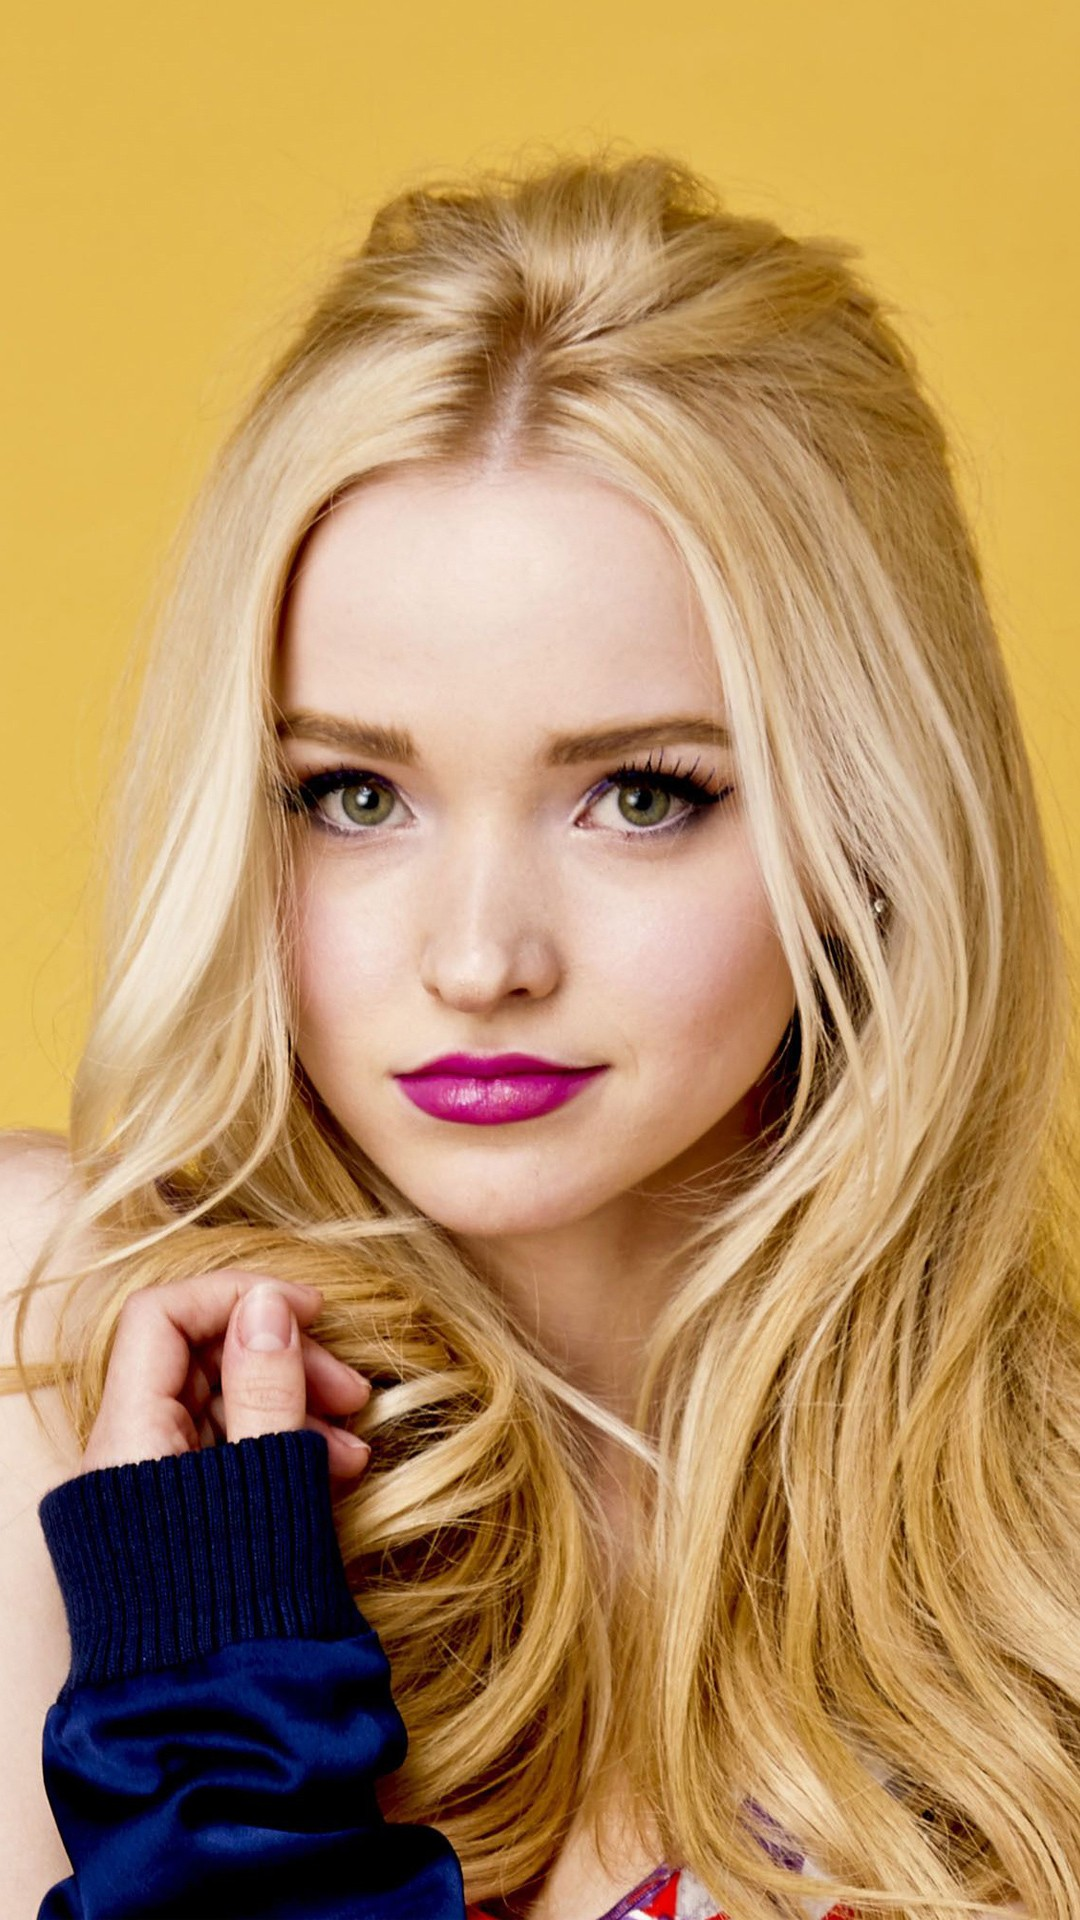 The Beatles Iphone 5 Wallpaper Dove Cameron 2018 4k Wallpapers Hd Wallpapers Id 22806